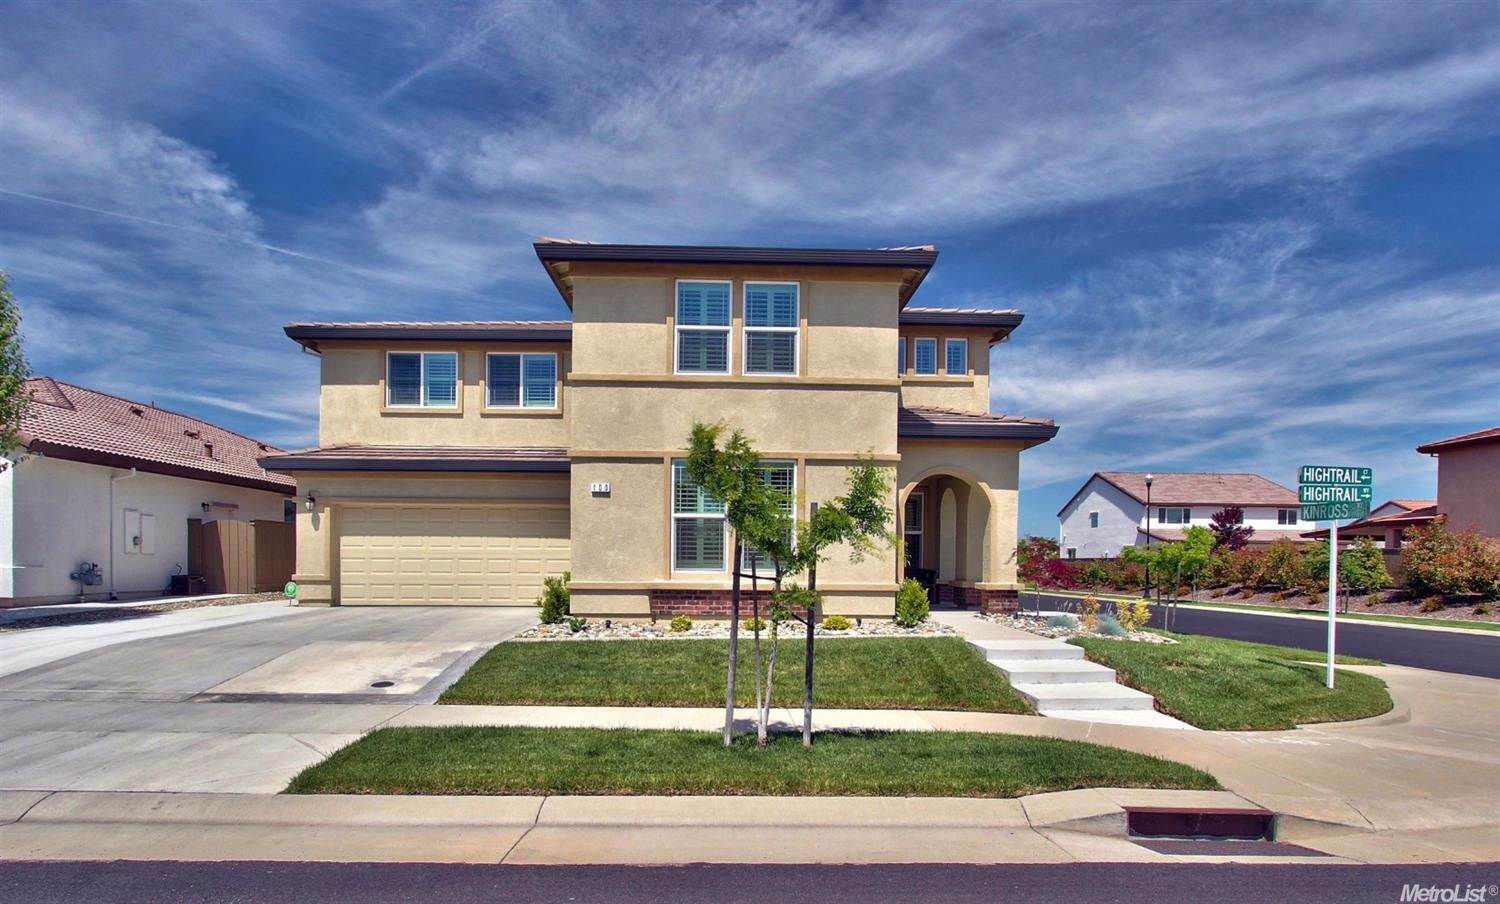 100 Hightrail Ct, Roseville, CA